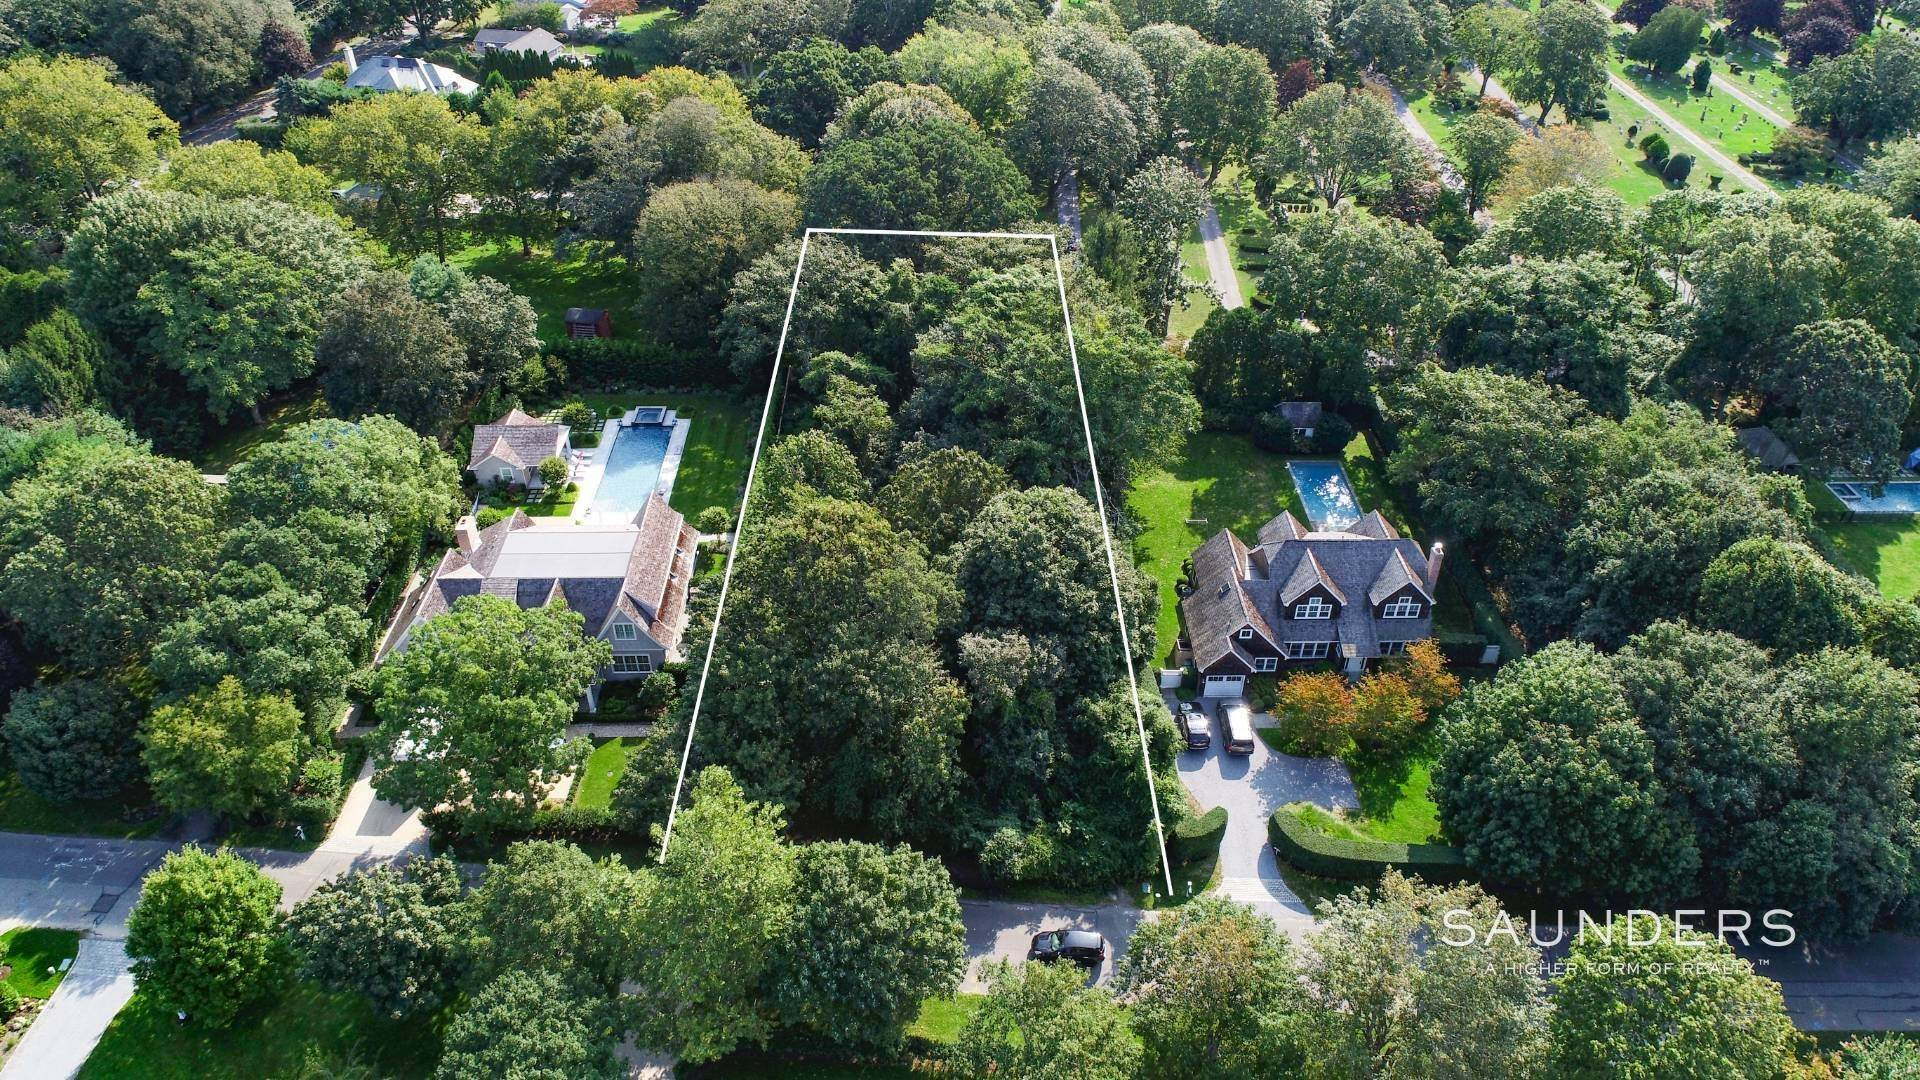 Land for Sale at Just Listed !! East Hampton Village Fringe Land 76 Gould St, East Hampton, East Hampton Town, NY 11937